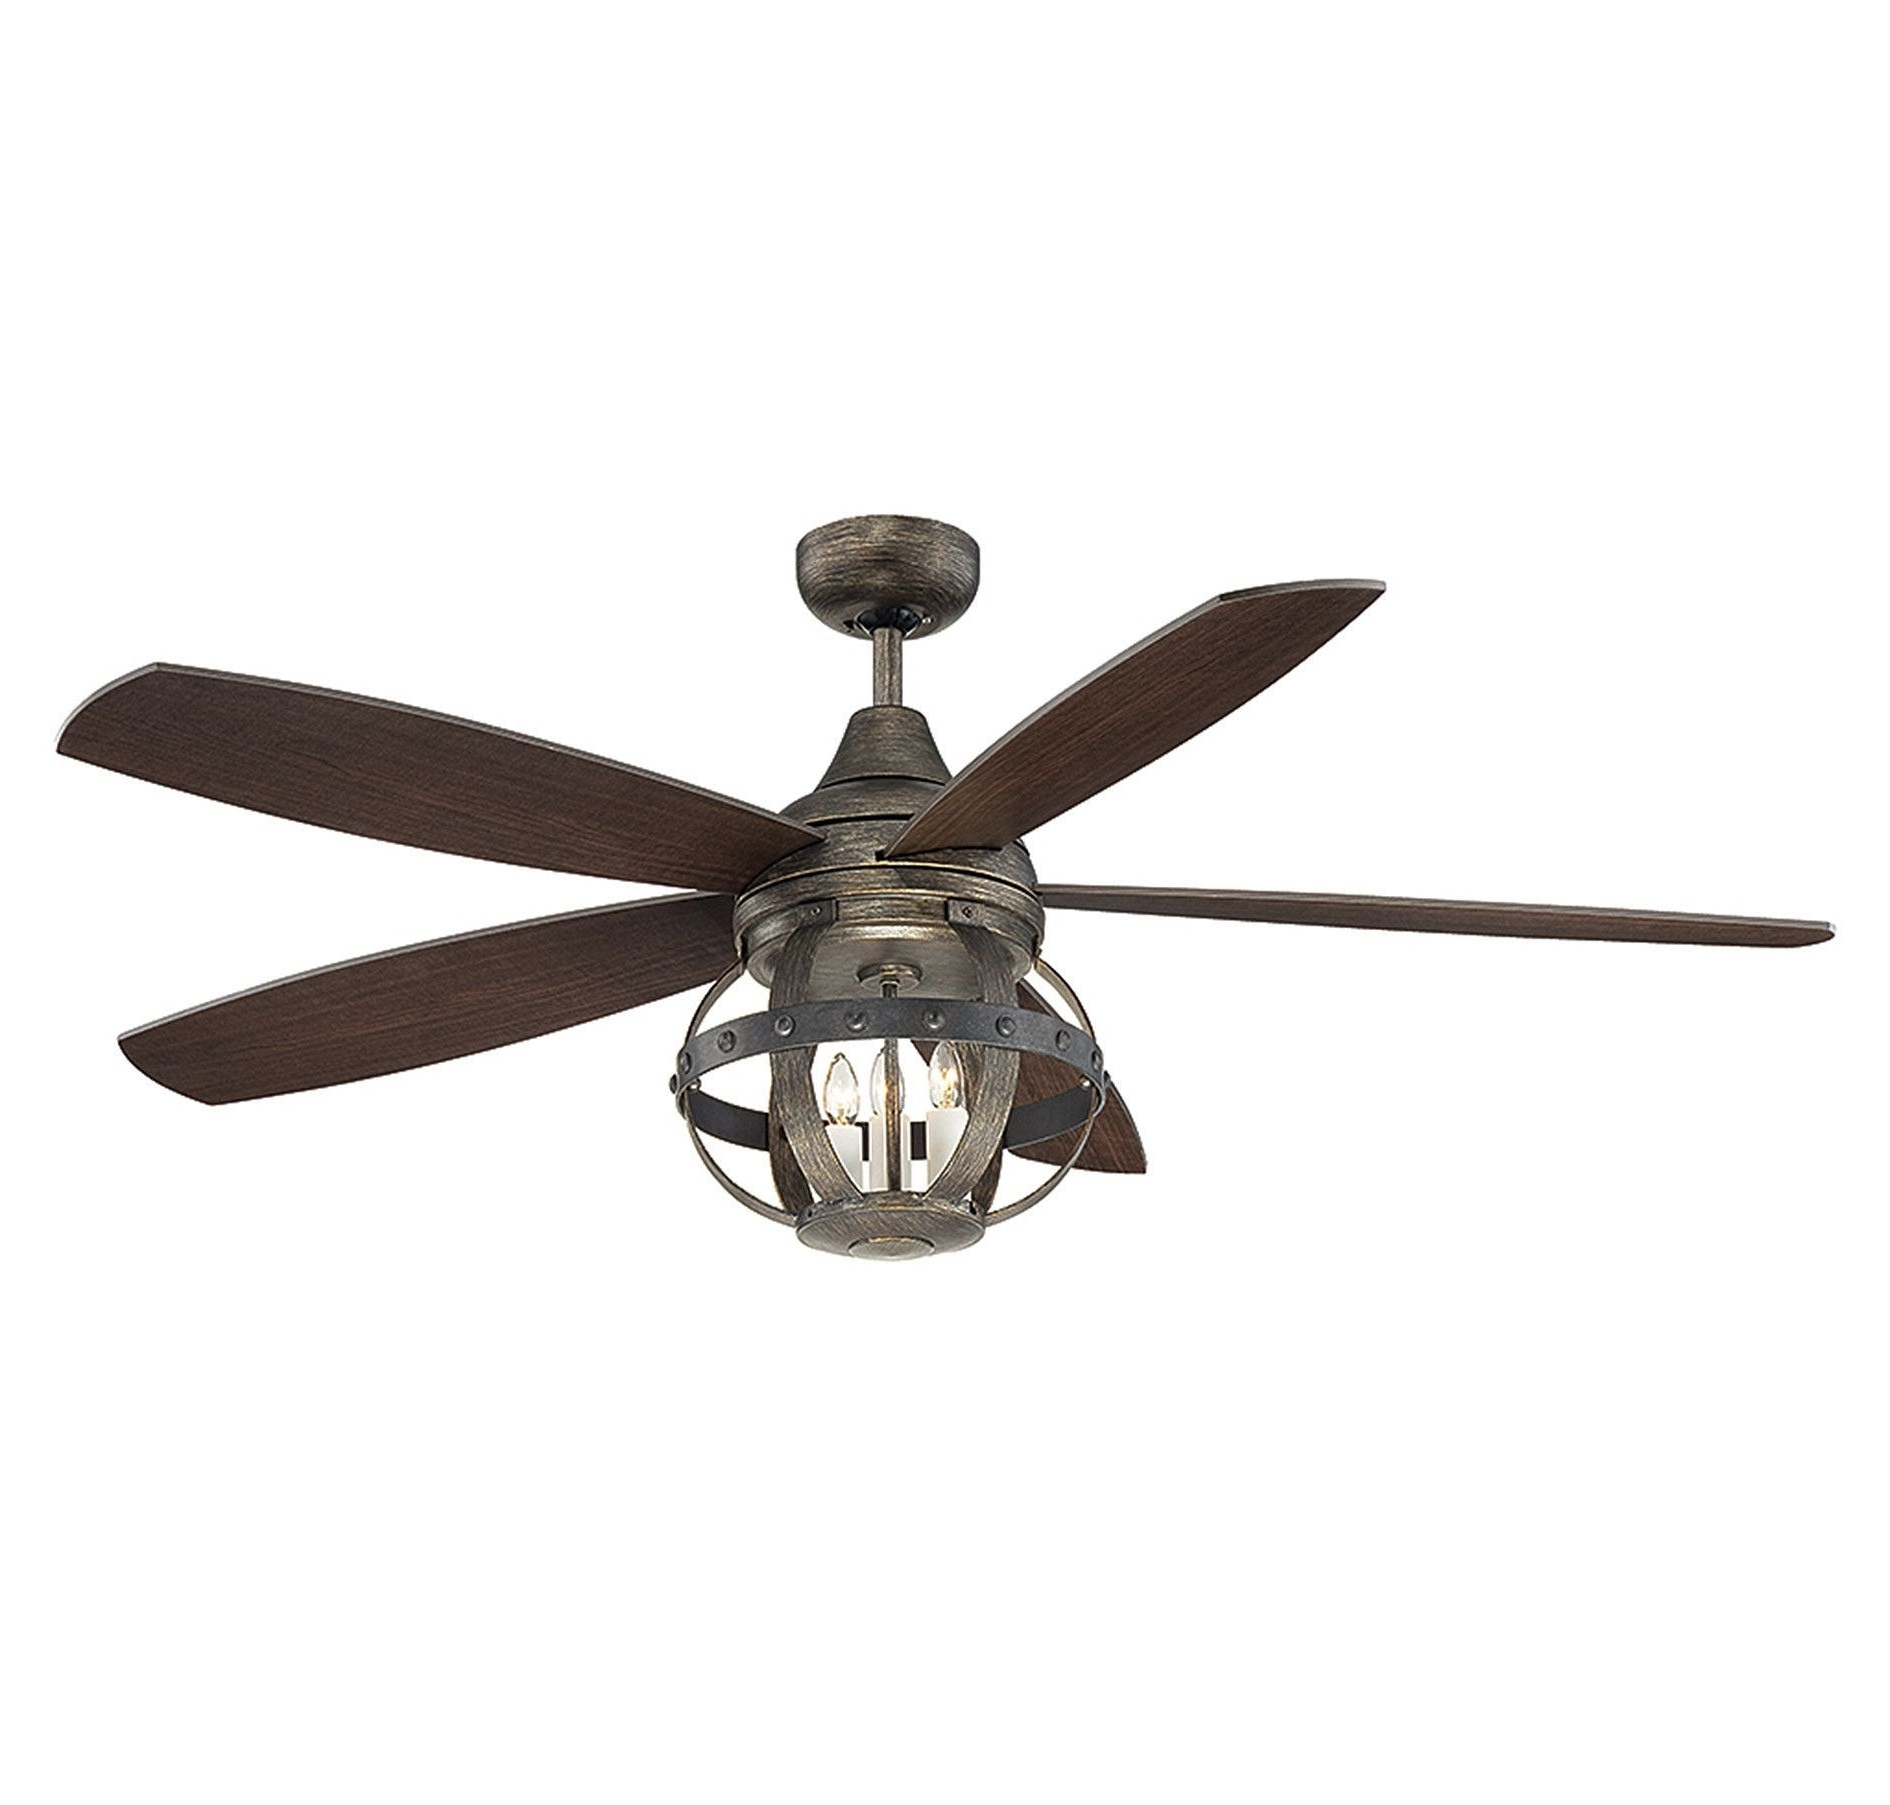 Home In Preferred Wayfair Outdoor Ceiling Fans With Lights (View 4 of 20)